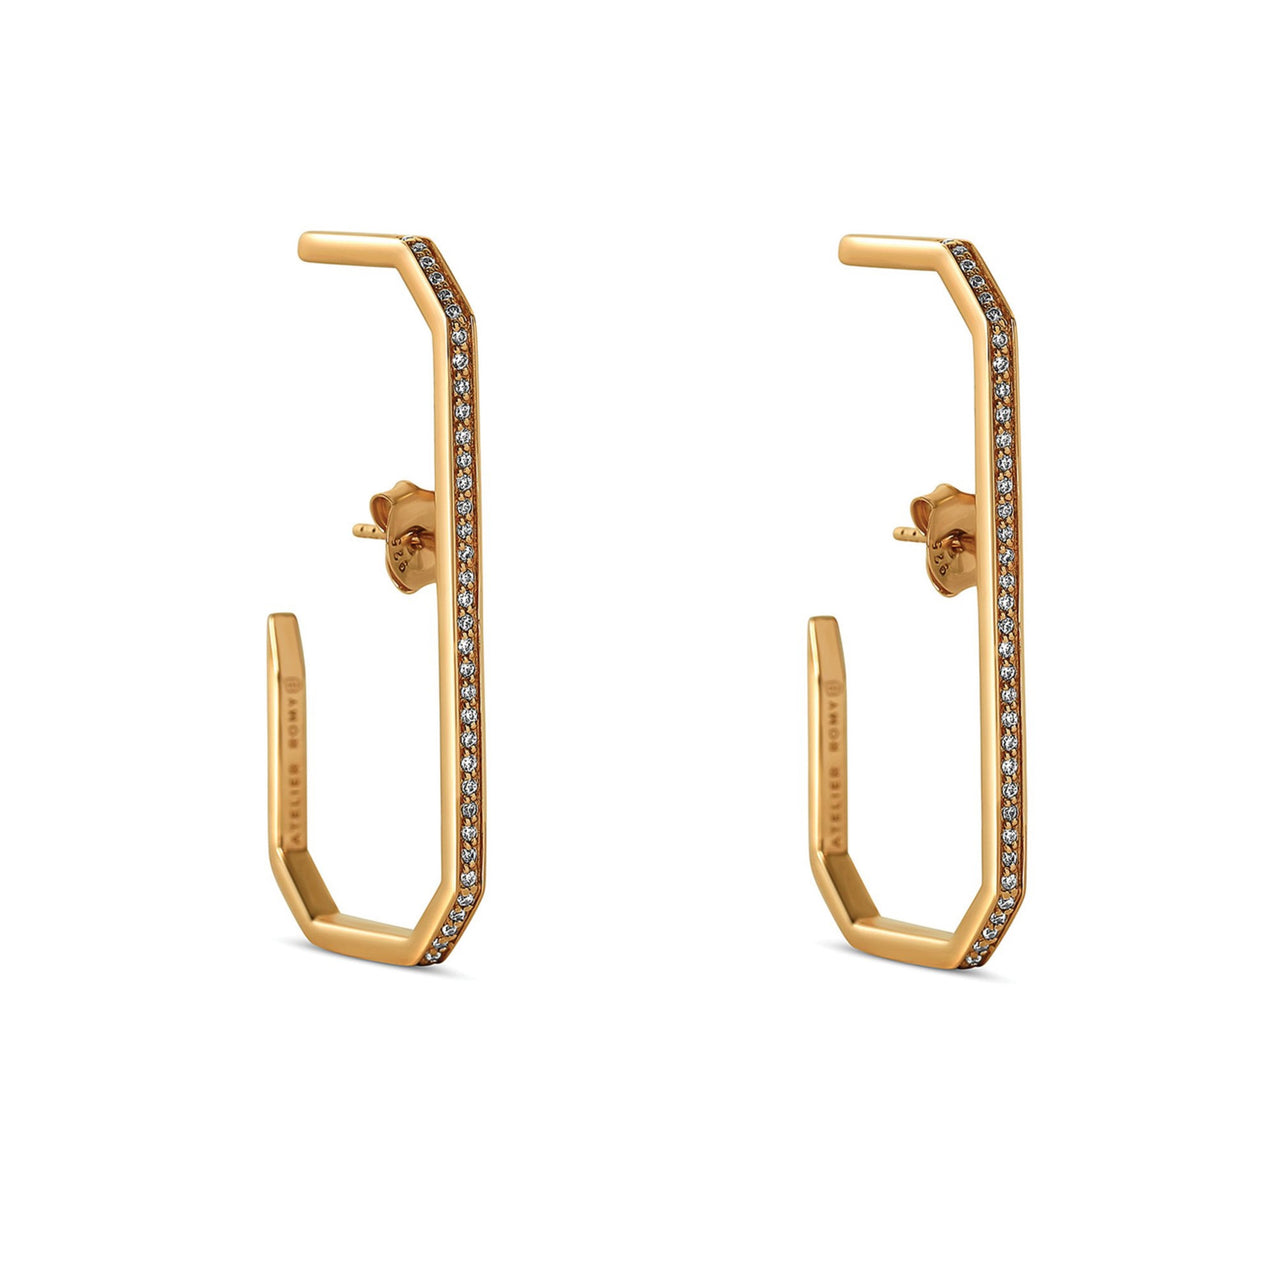 The Lara L Earrings Yellow Gold with Pave